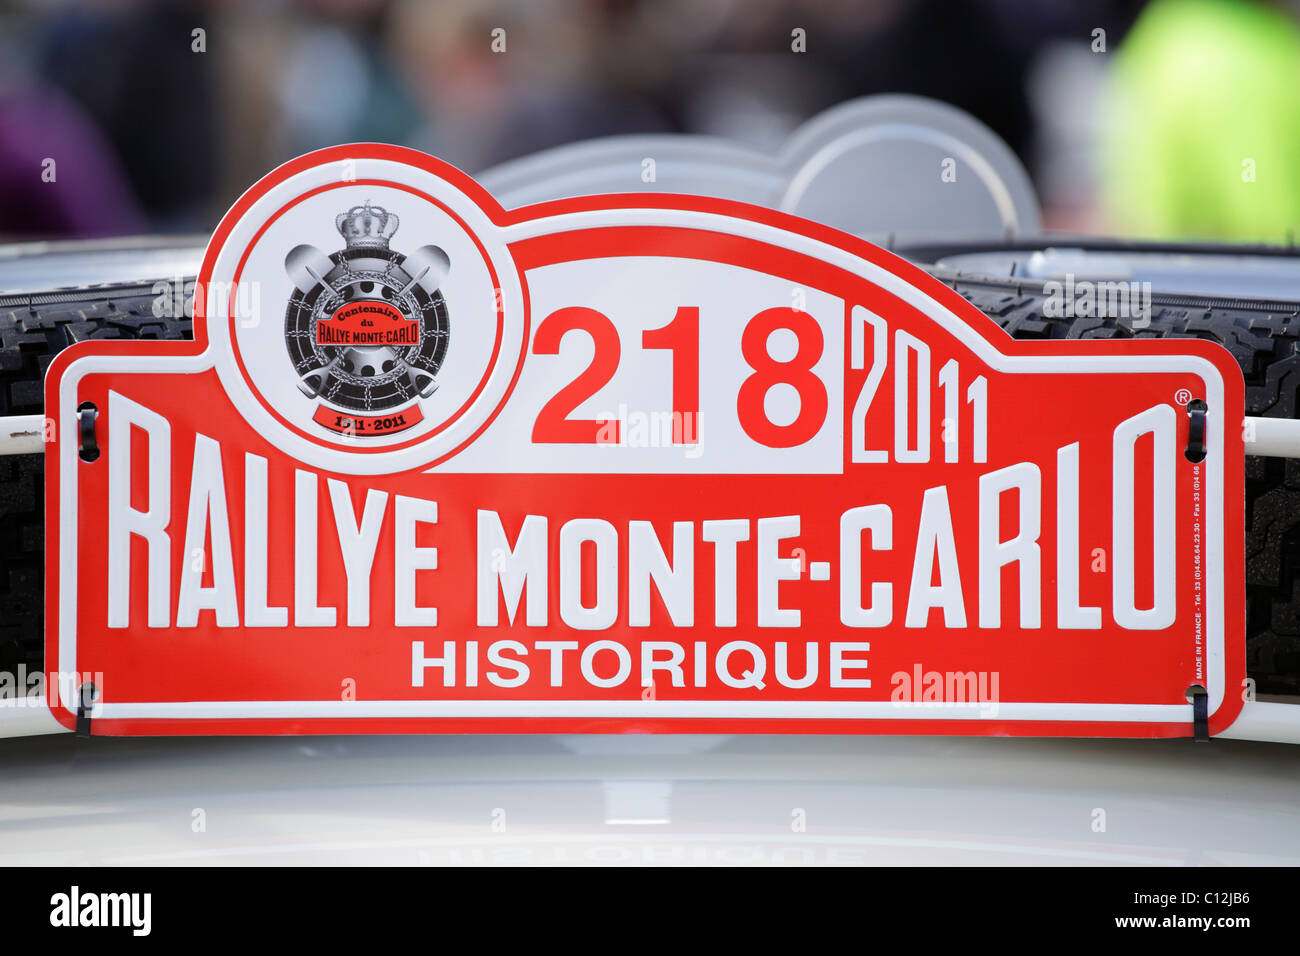 A Monte Carlo Rallye sign, UK - Stock Image